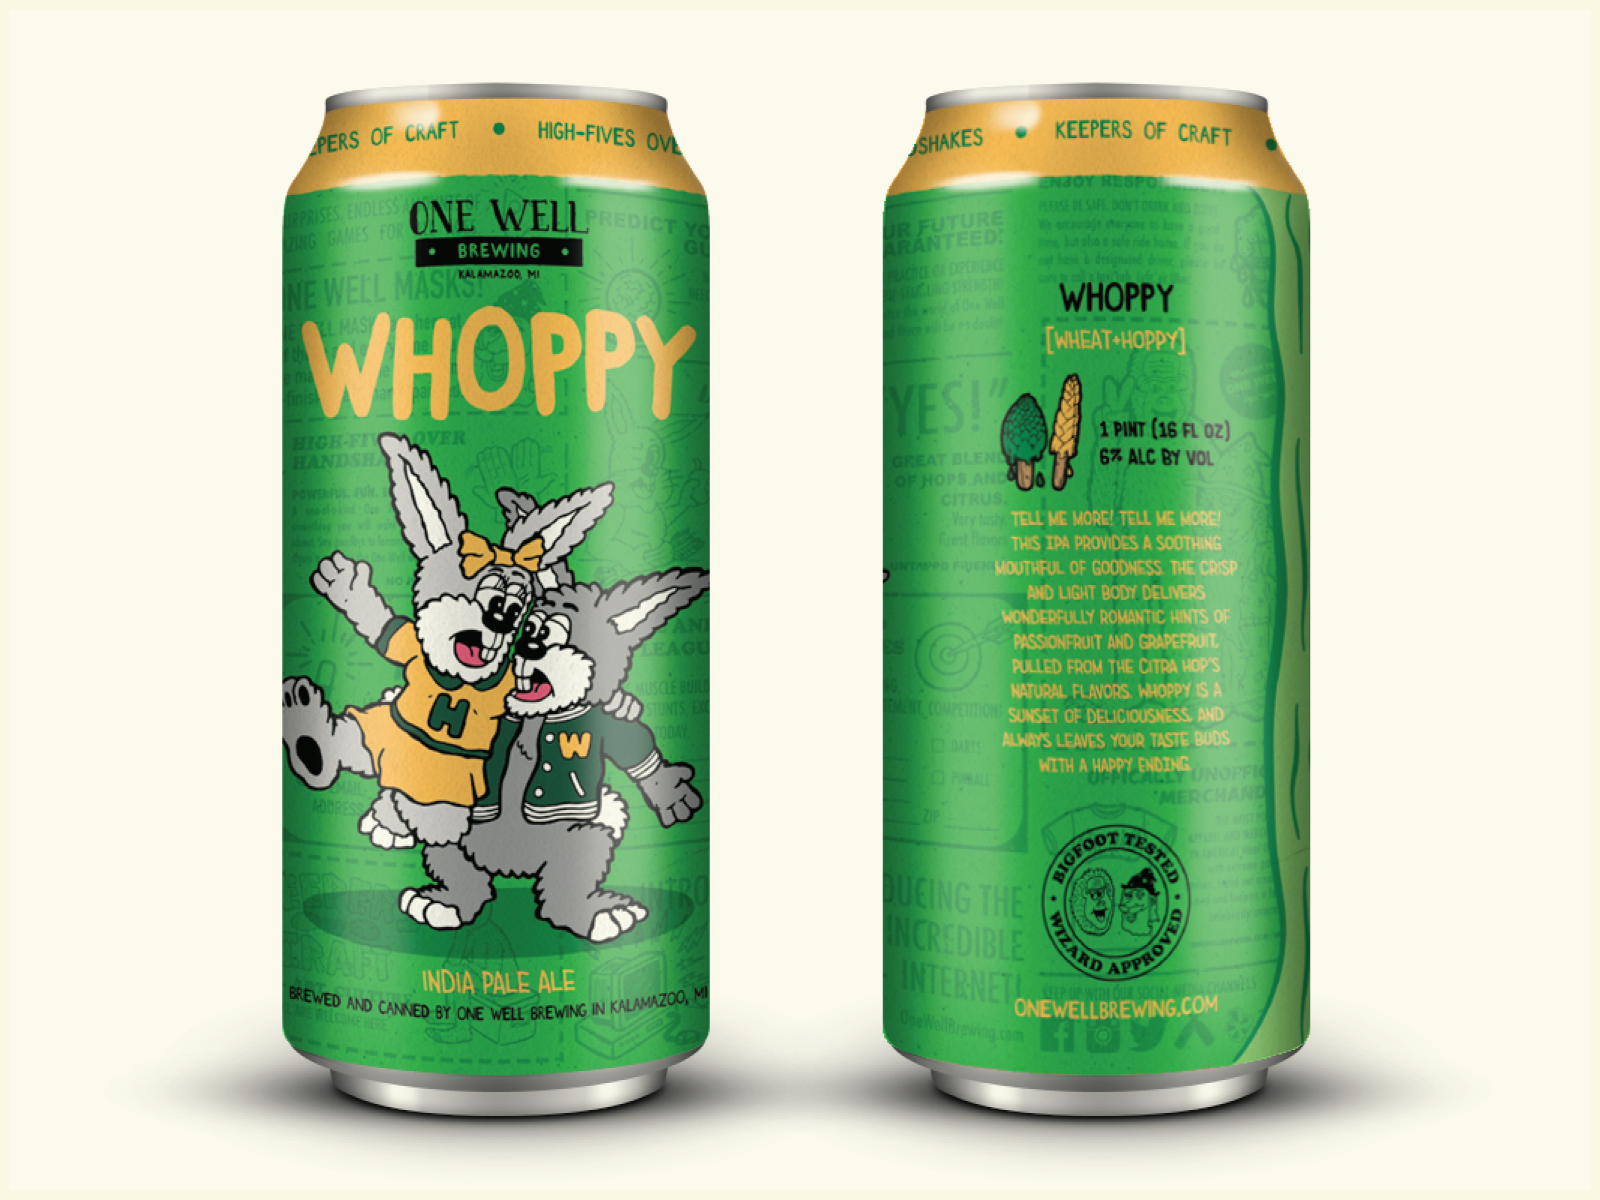 STUFFED_BRAIN_ONE_WELL_BREWING_CAN_WHOPPY_1.png